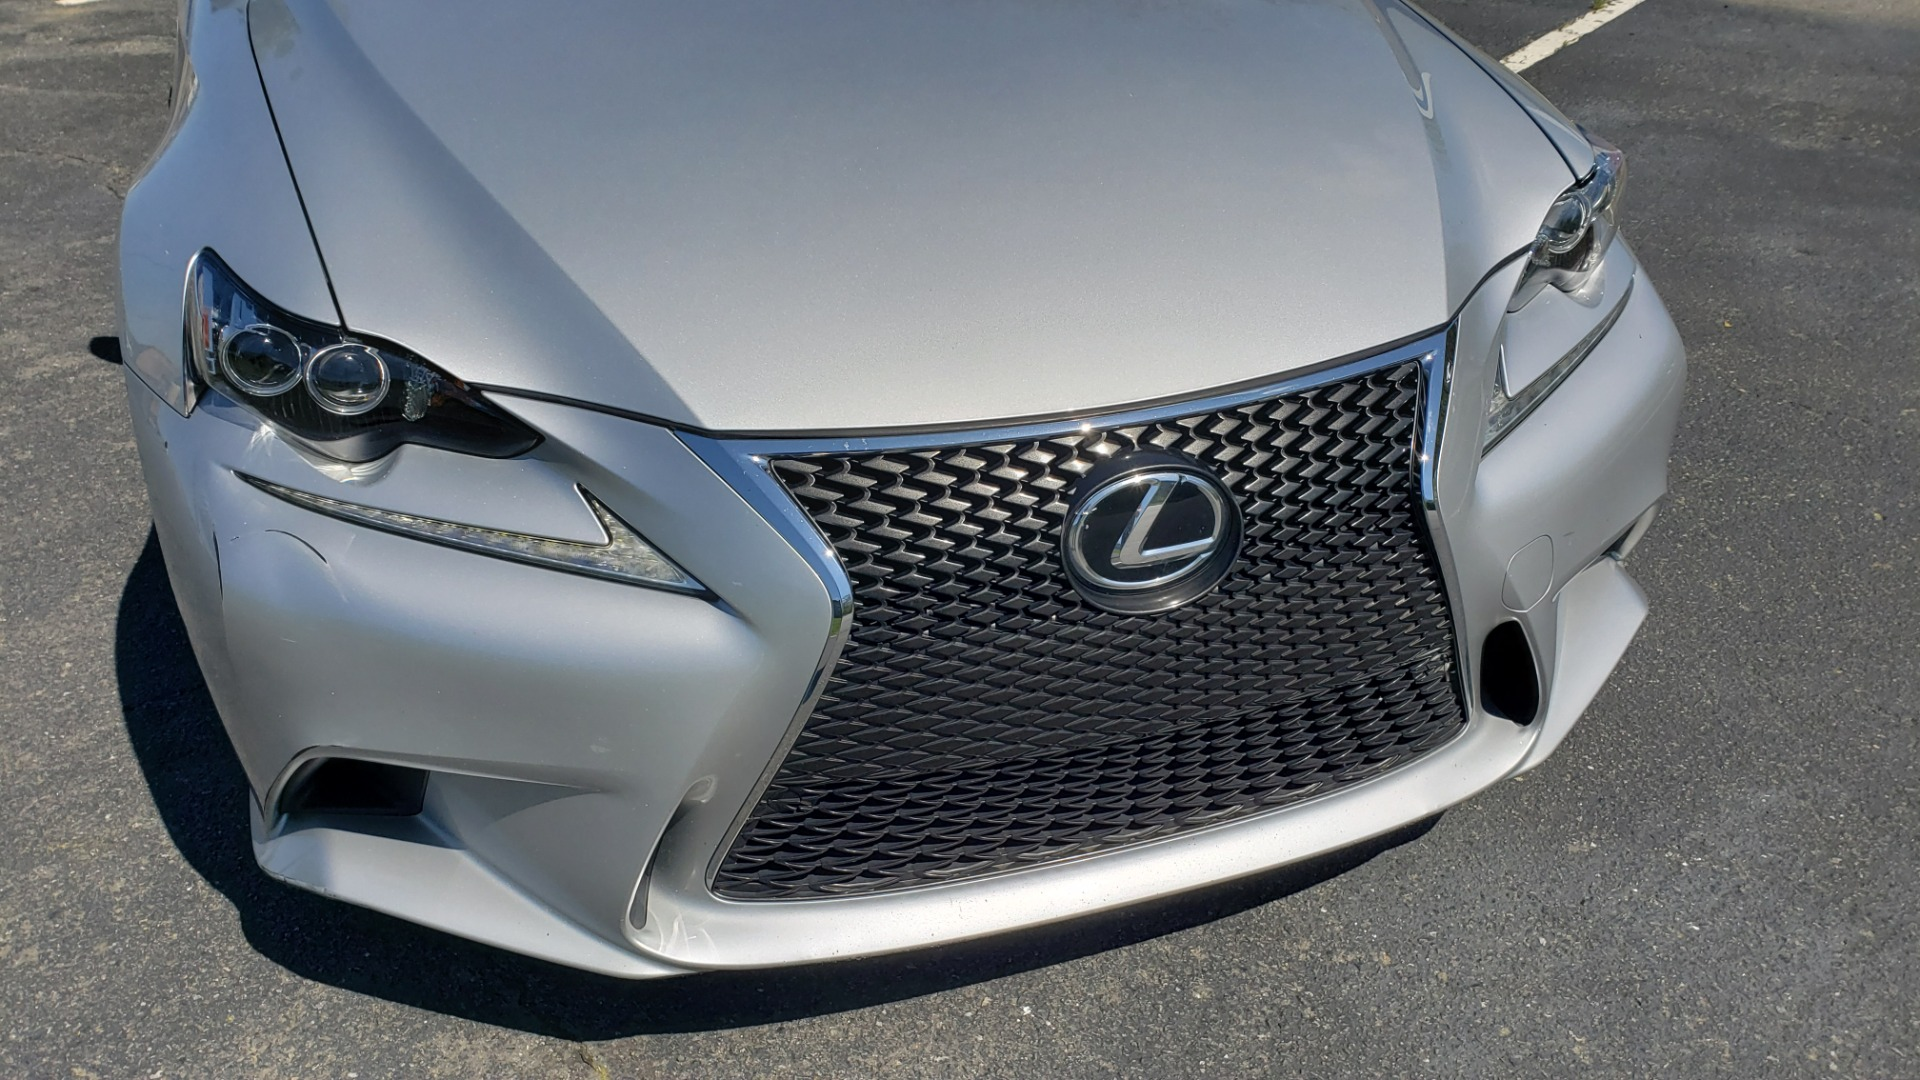 Used 2015 Lexus IS 250 F-SPORT / BSM / SUNROOF / VENT SEATS / REARVIEW for sale Sold at Formula Imports in Charlotte NC 28227 26